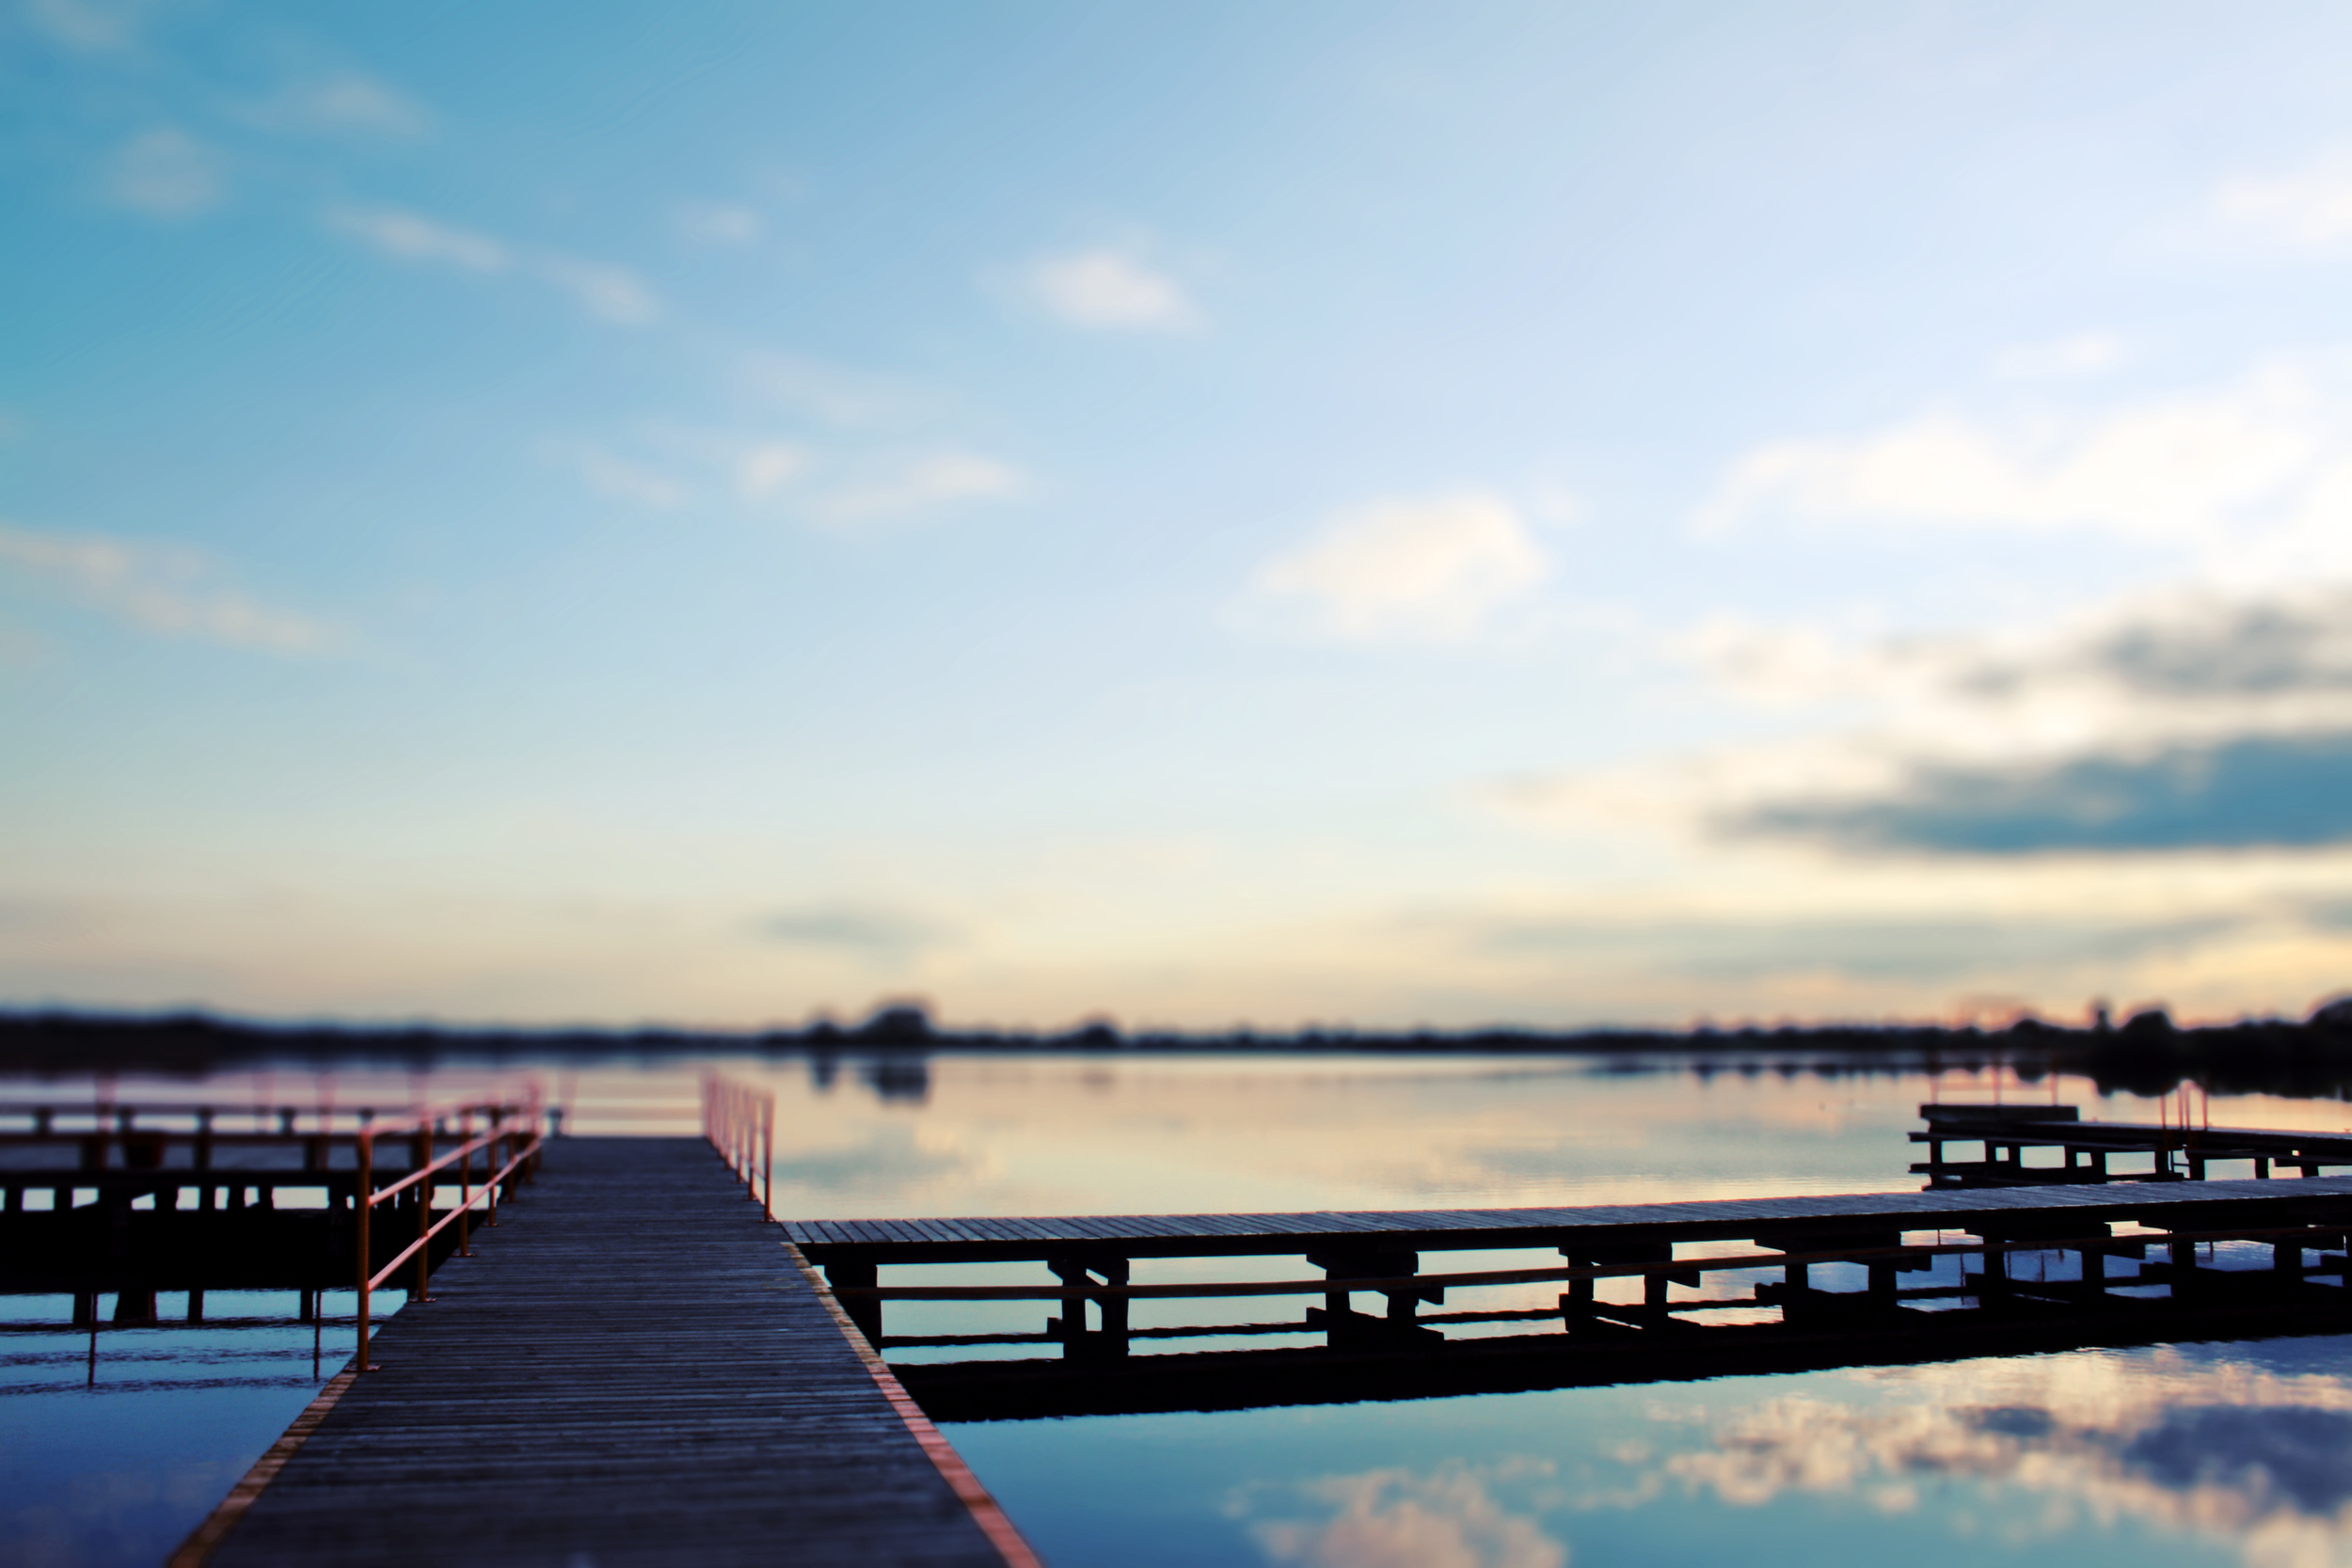 sky-sunset-bridge-lake.jpg